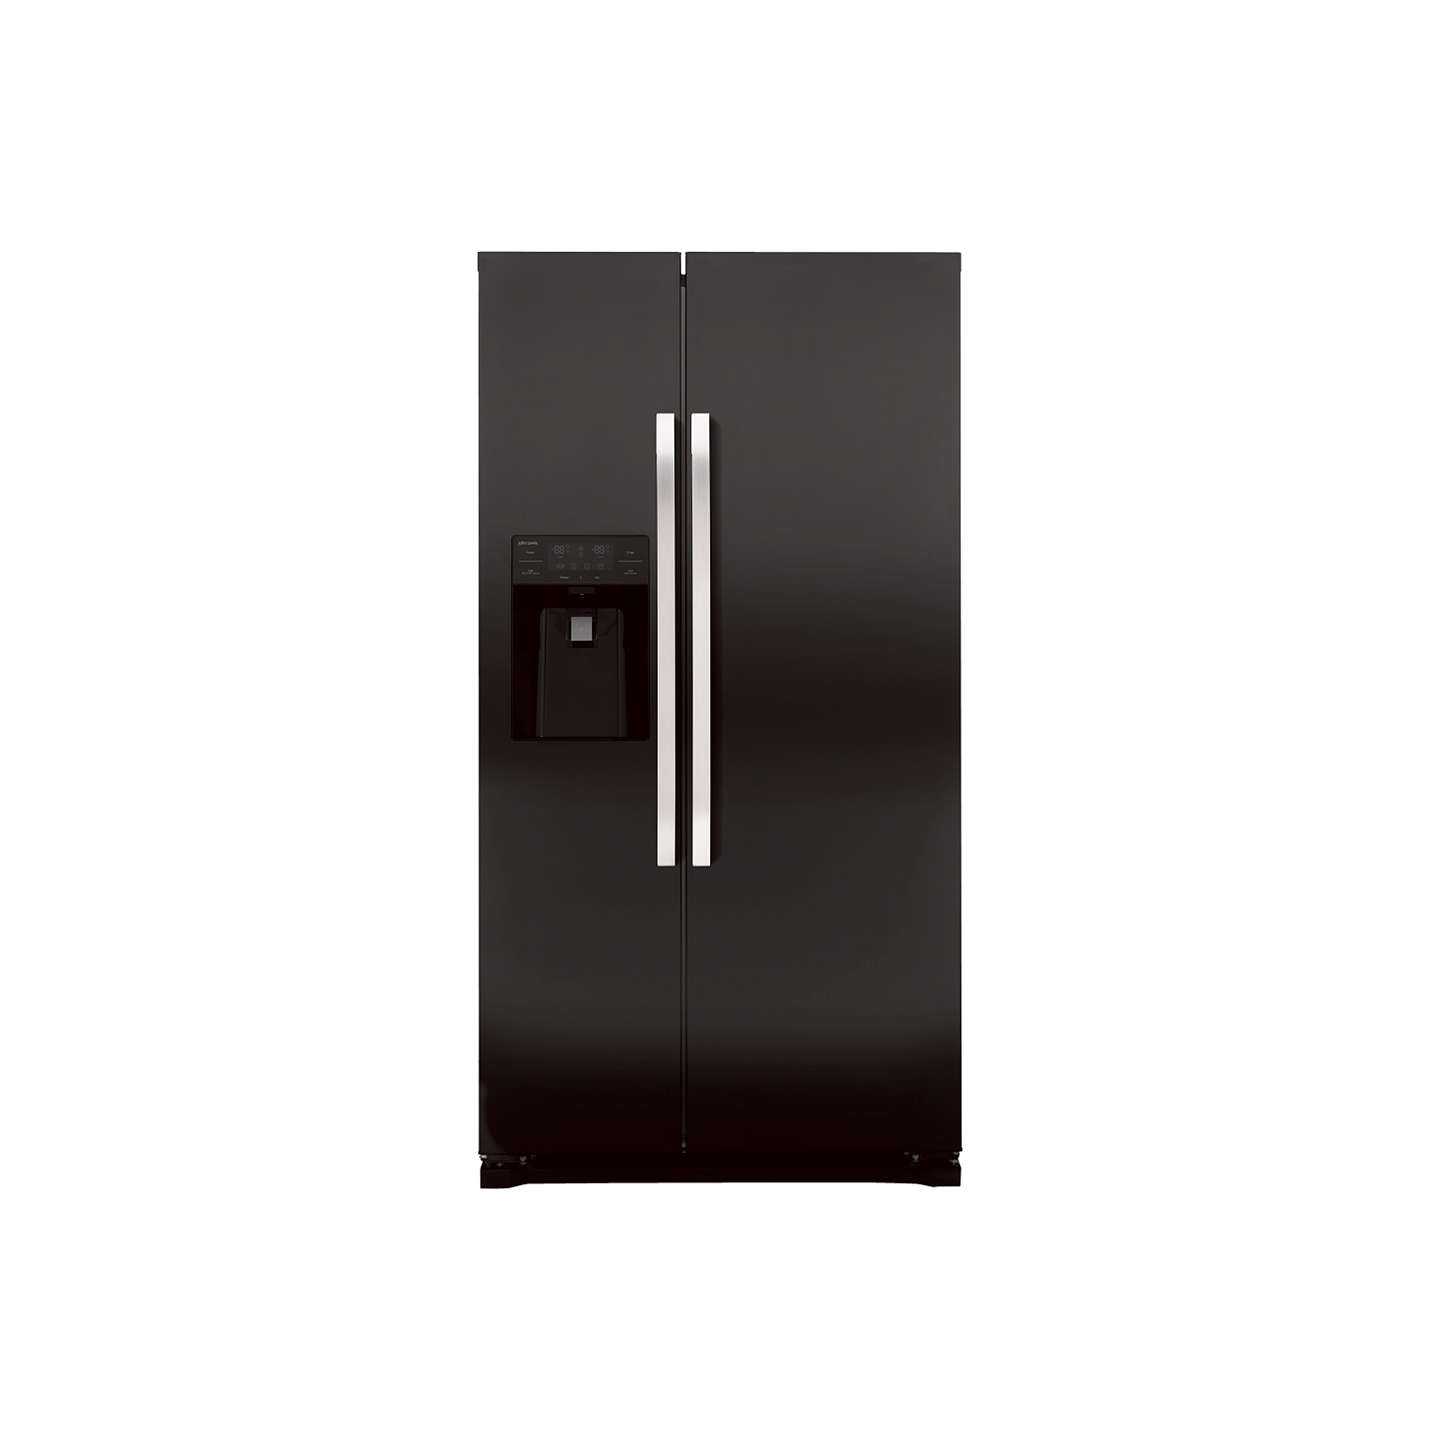 BuyJohn Lewis JLAFFB2011 American Style Fridge Freezer, Black Online at johnlewis.com